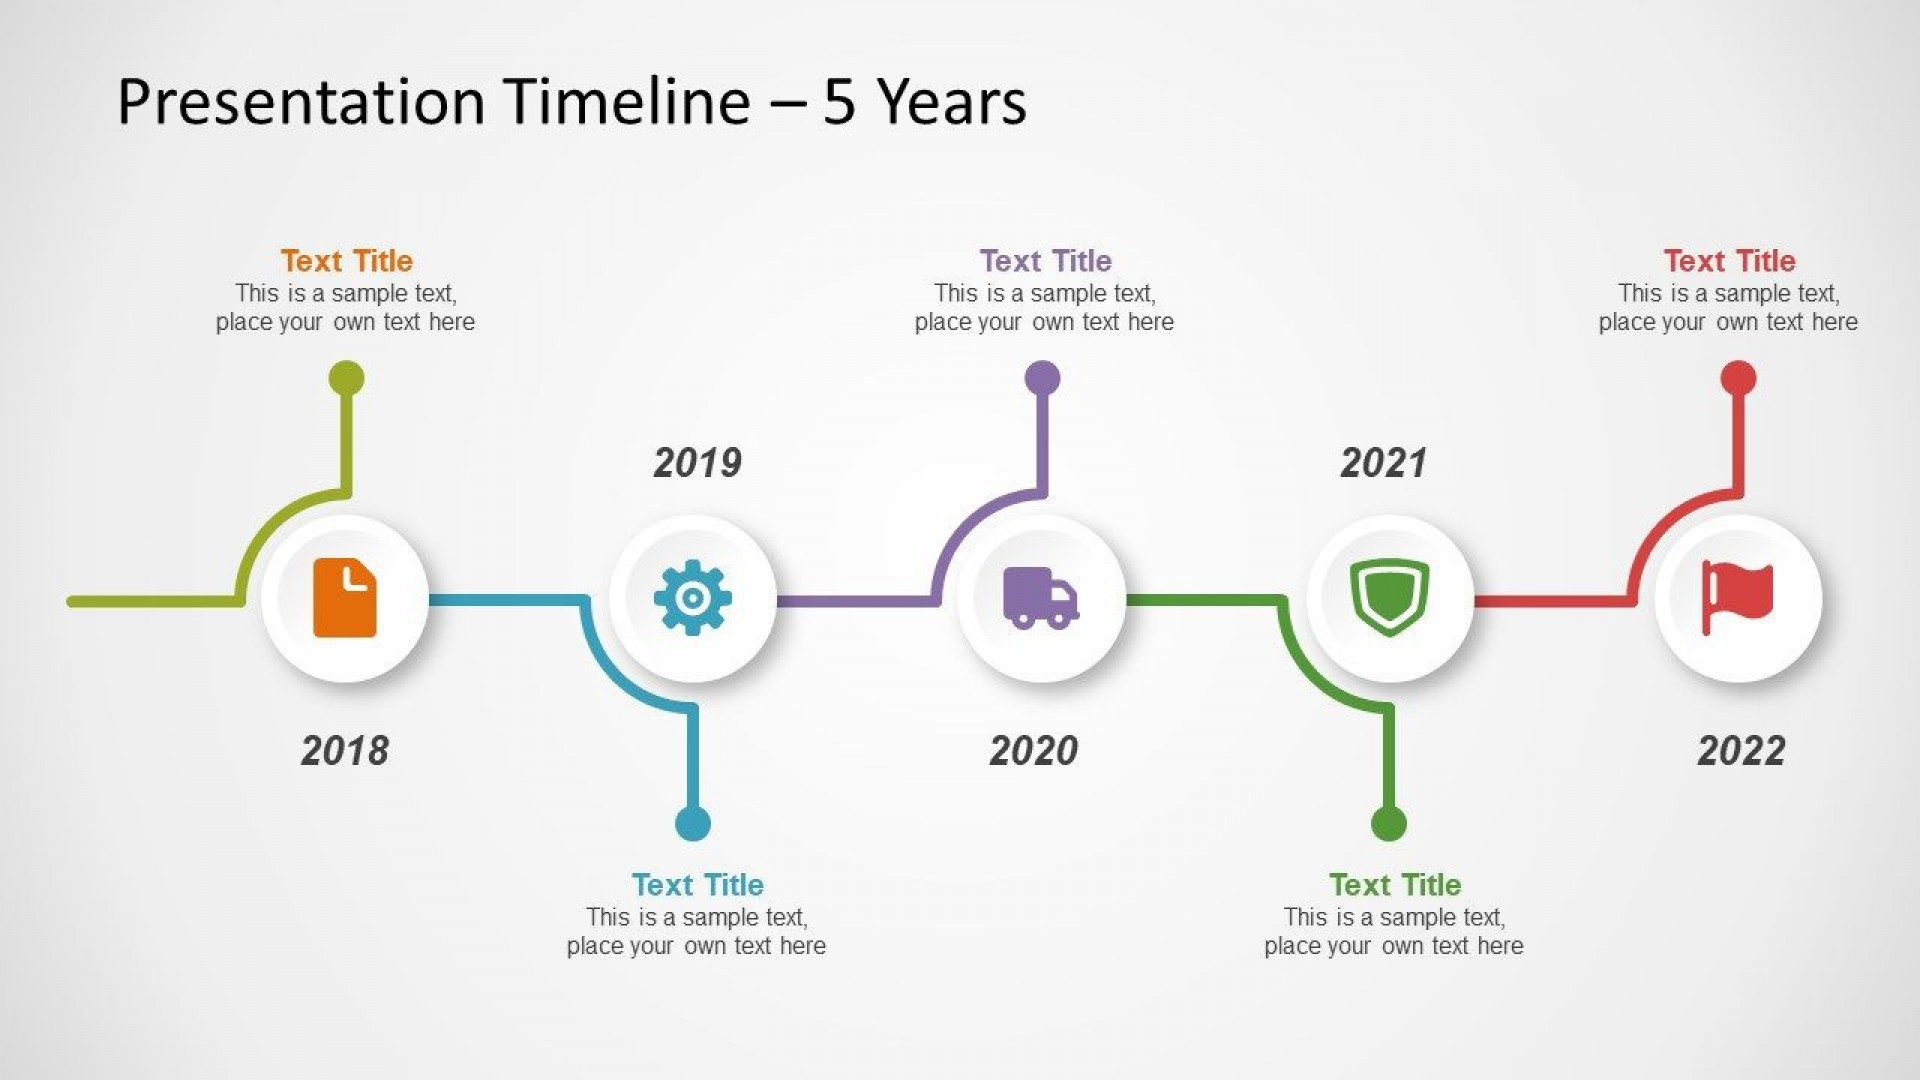 005 Magnificent Project Timeline Template Powerpoint High Definition  M Ppt Free Download1920